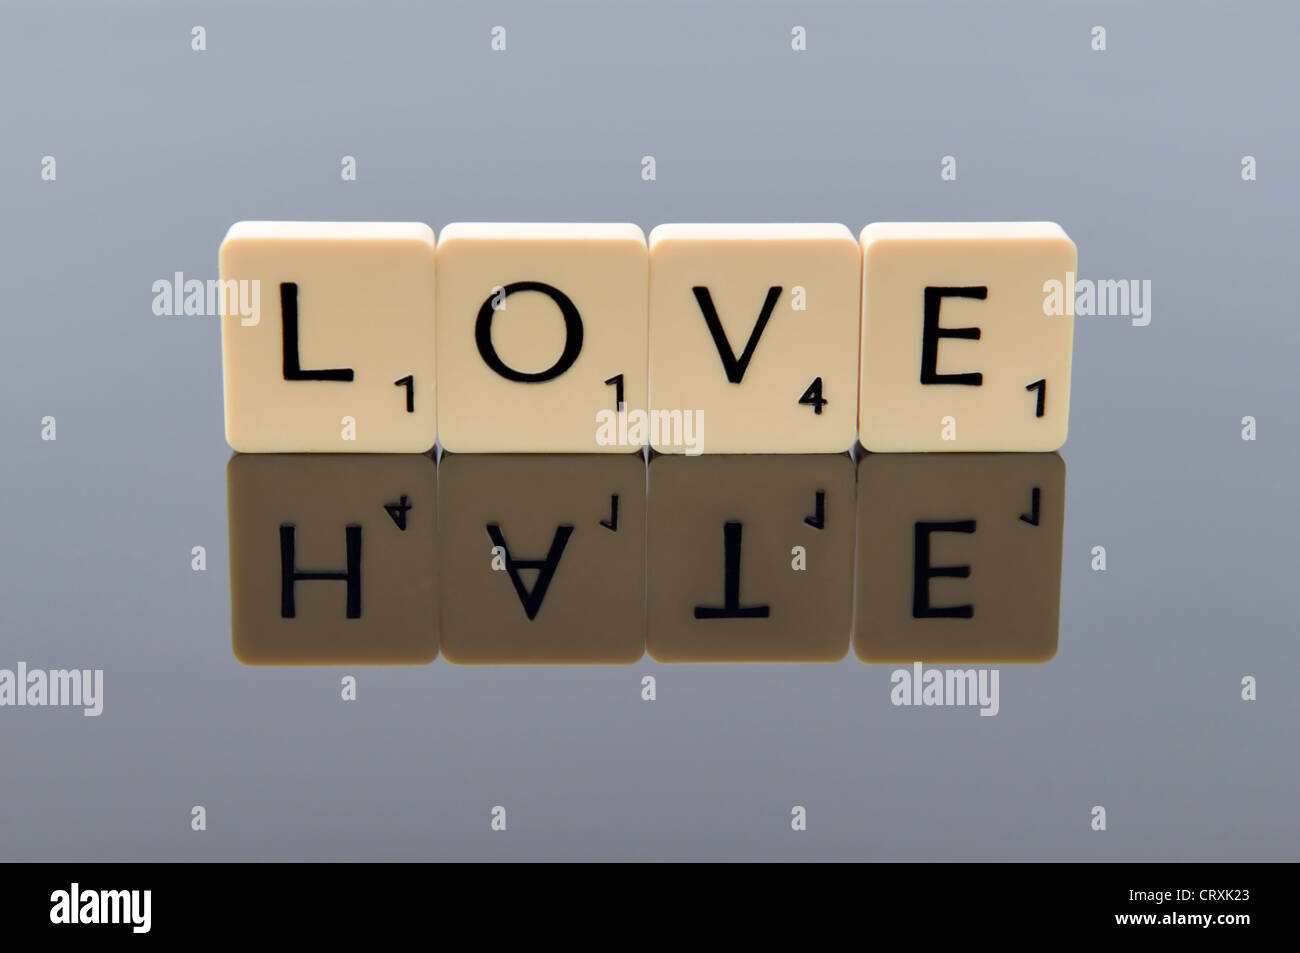 Scrabble Letters Spelling Out The Word Love With The Word As Its Reflection Concept